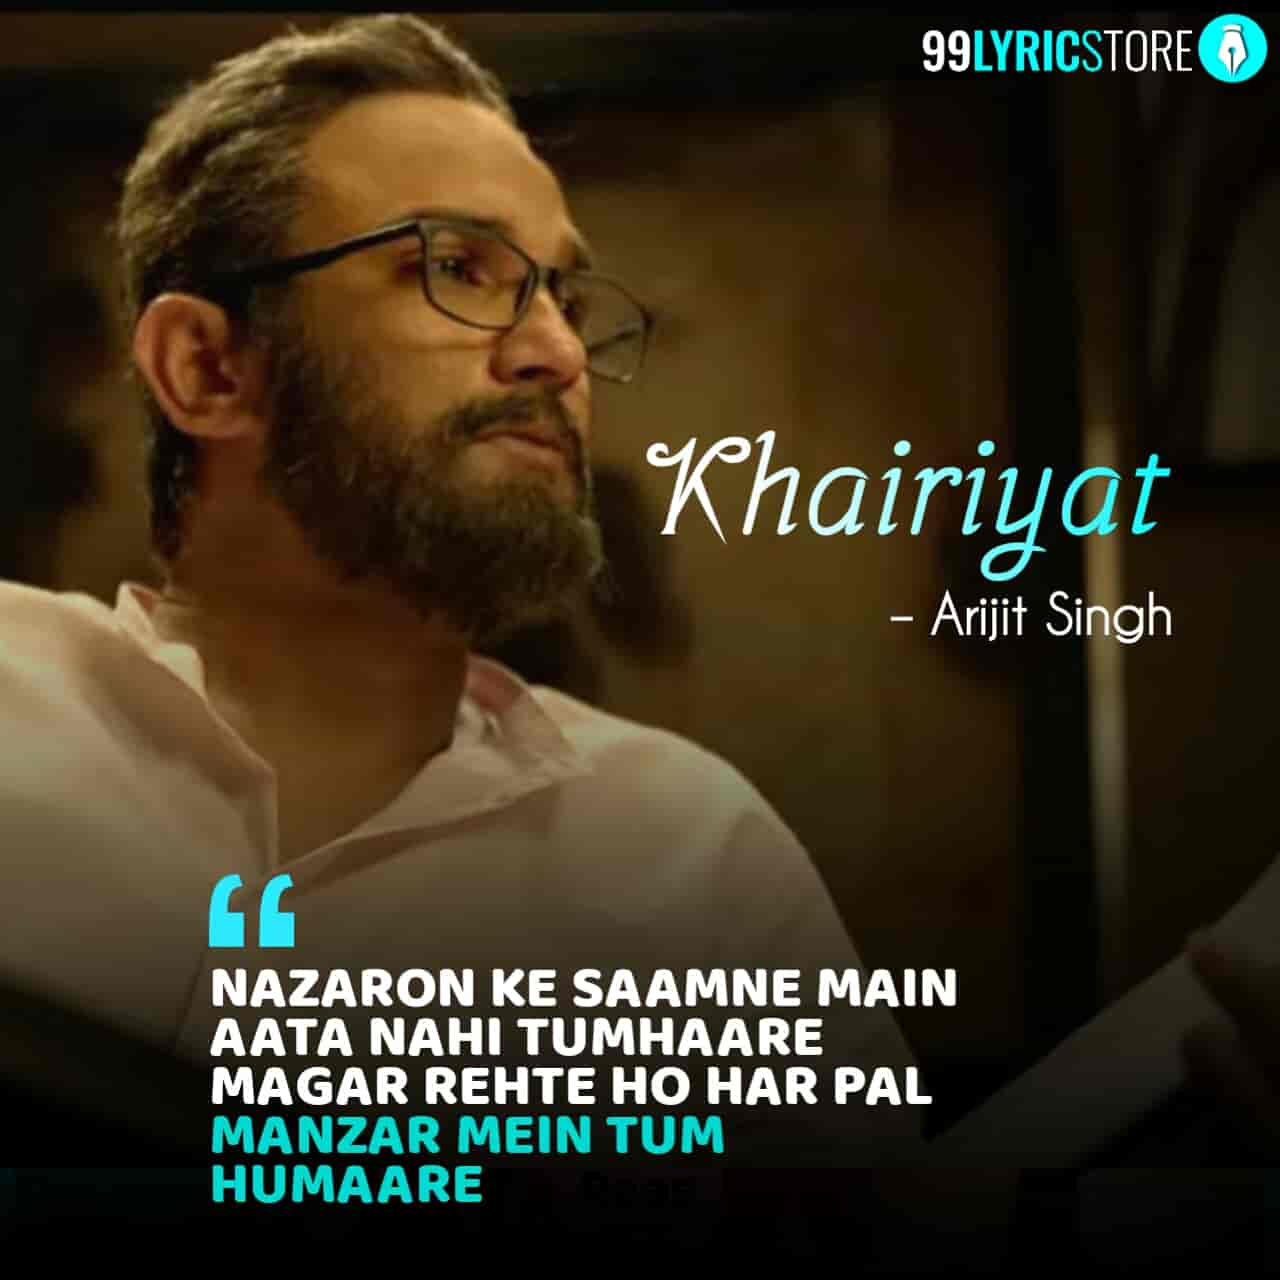 Khairiyat Hindi Sad Song sung by Arijit Singh from movie chhichhore